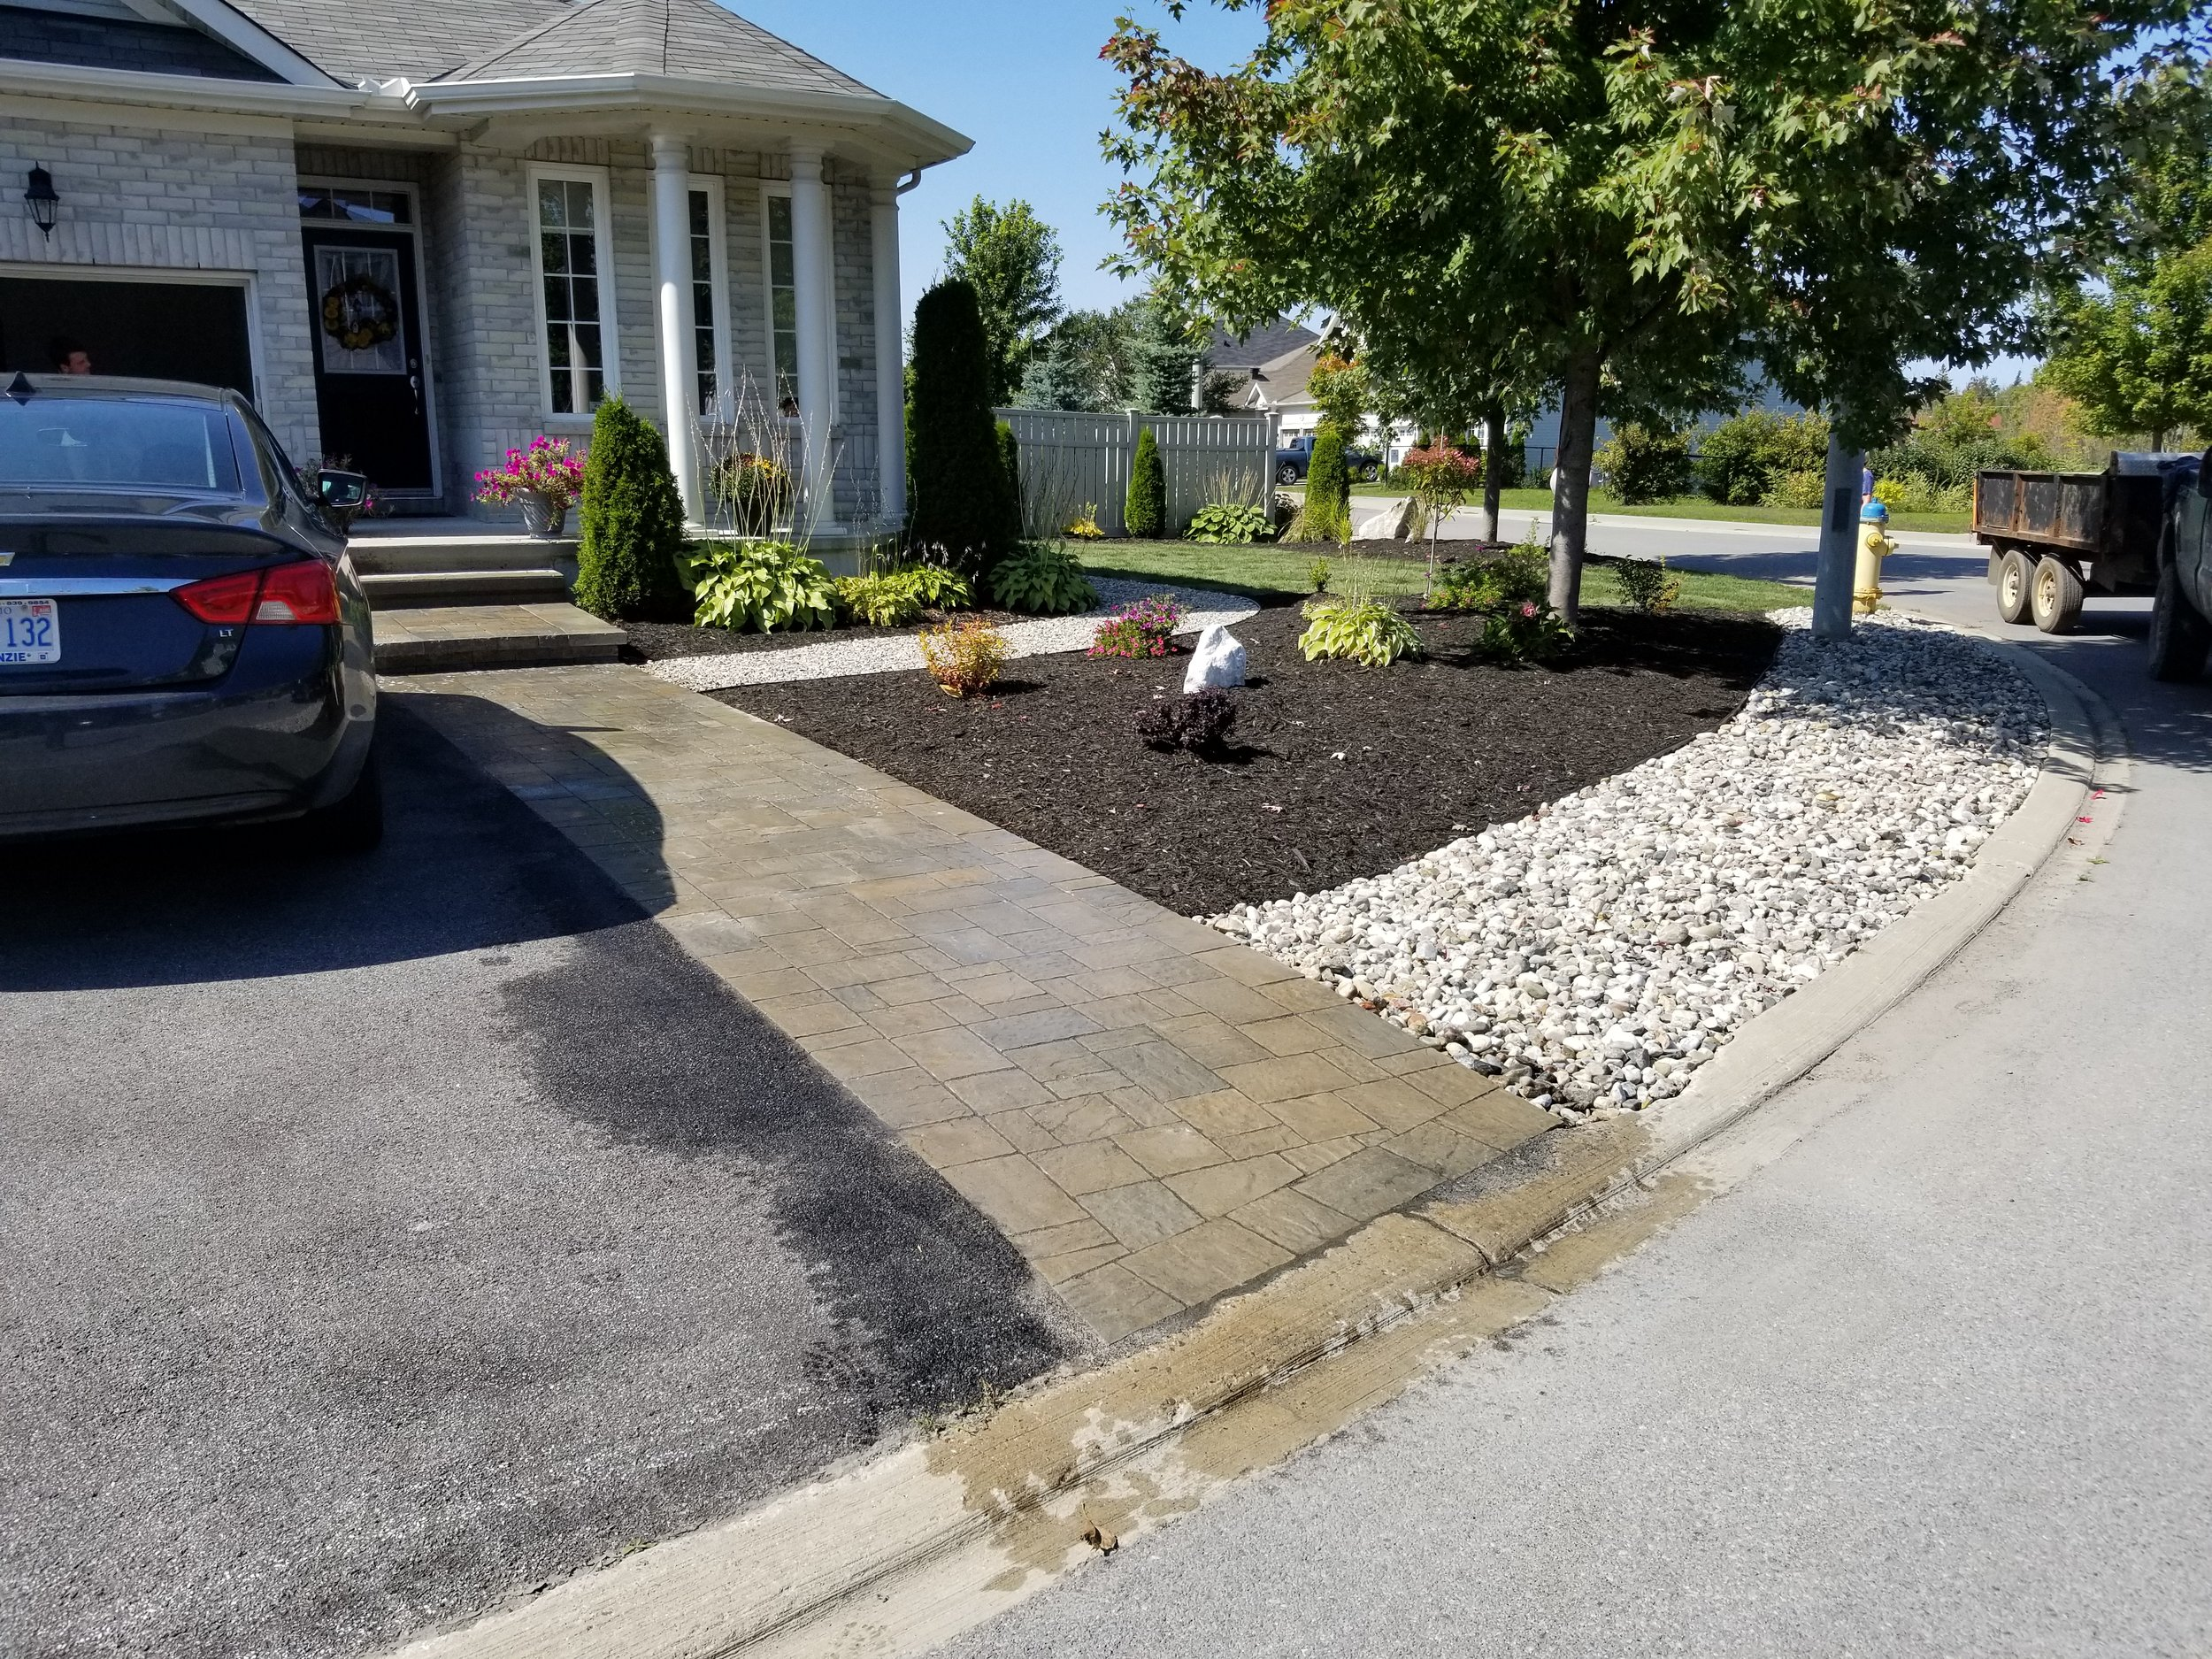 Softscape   From Gardens to Sod install let us beautify your property one job at a time.